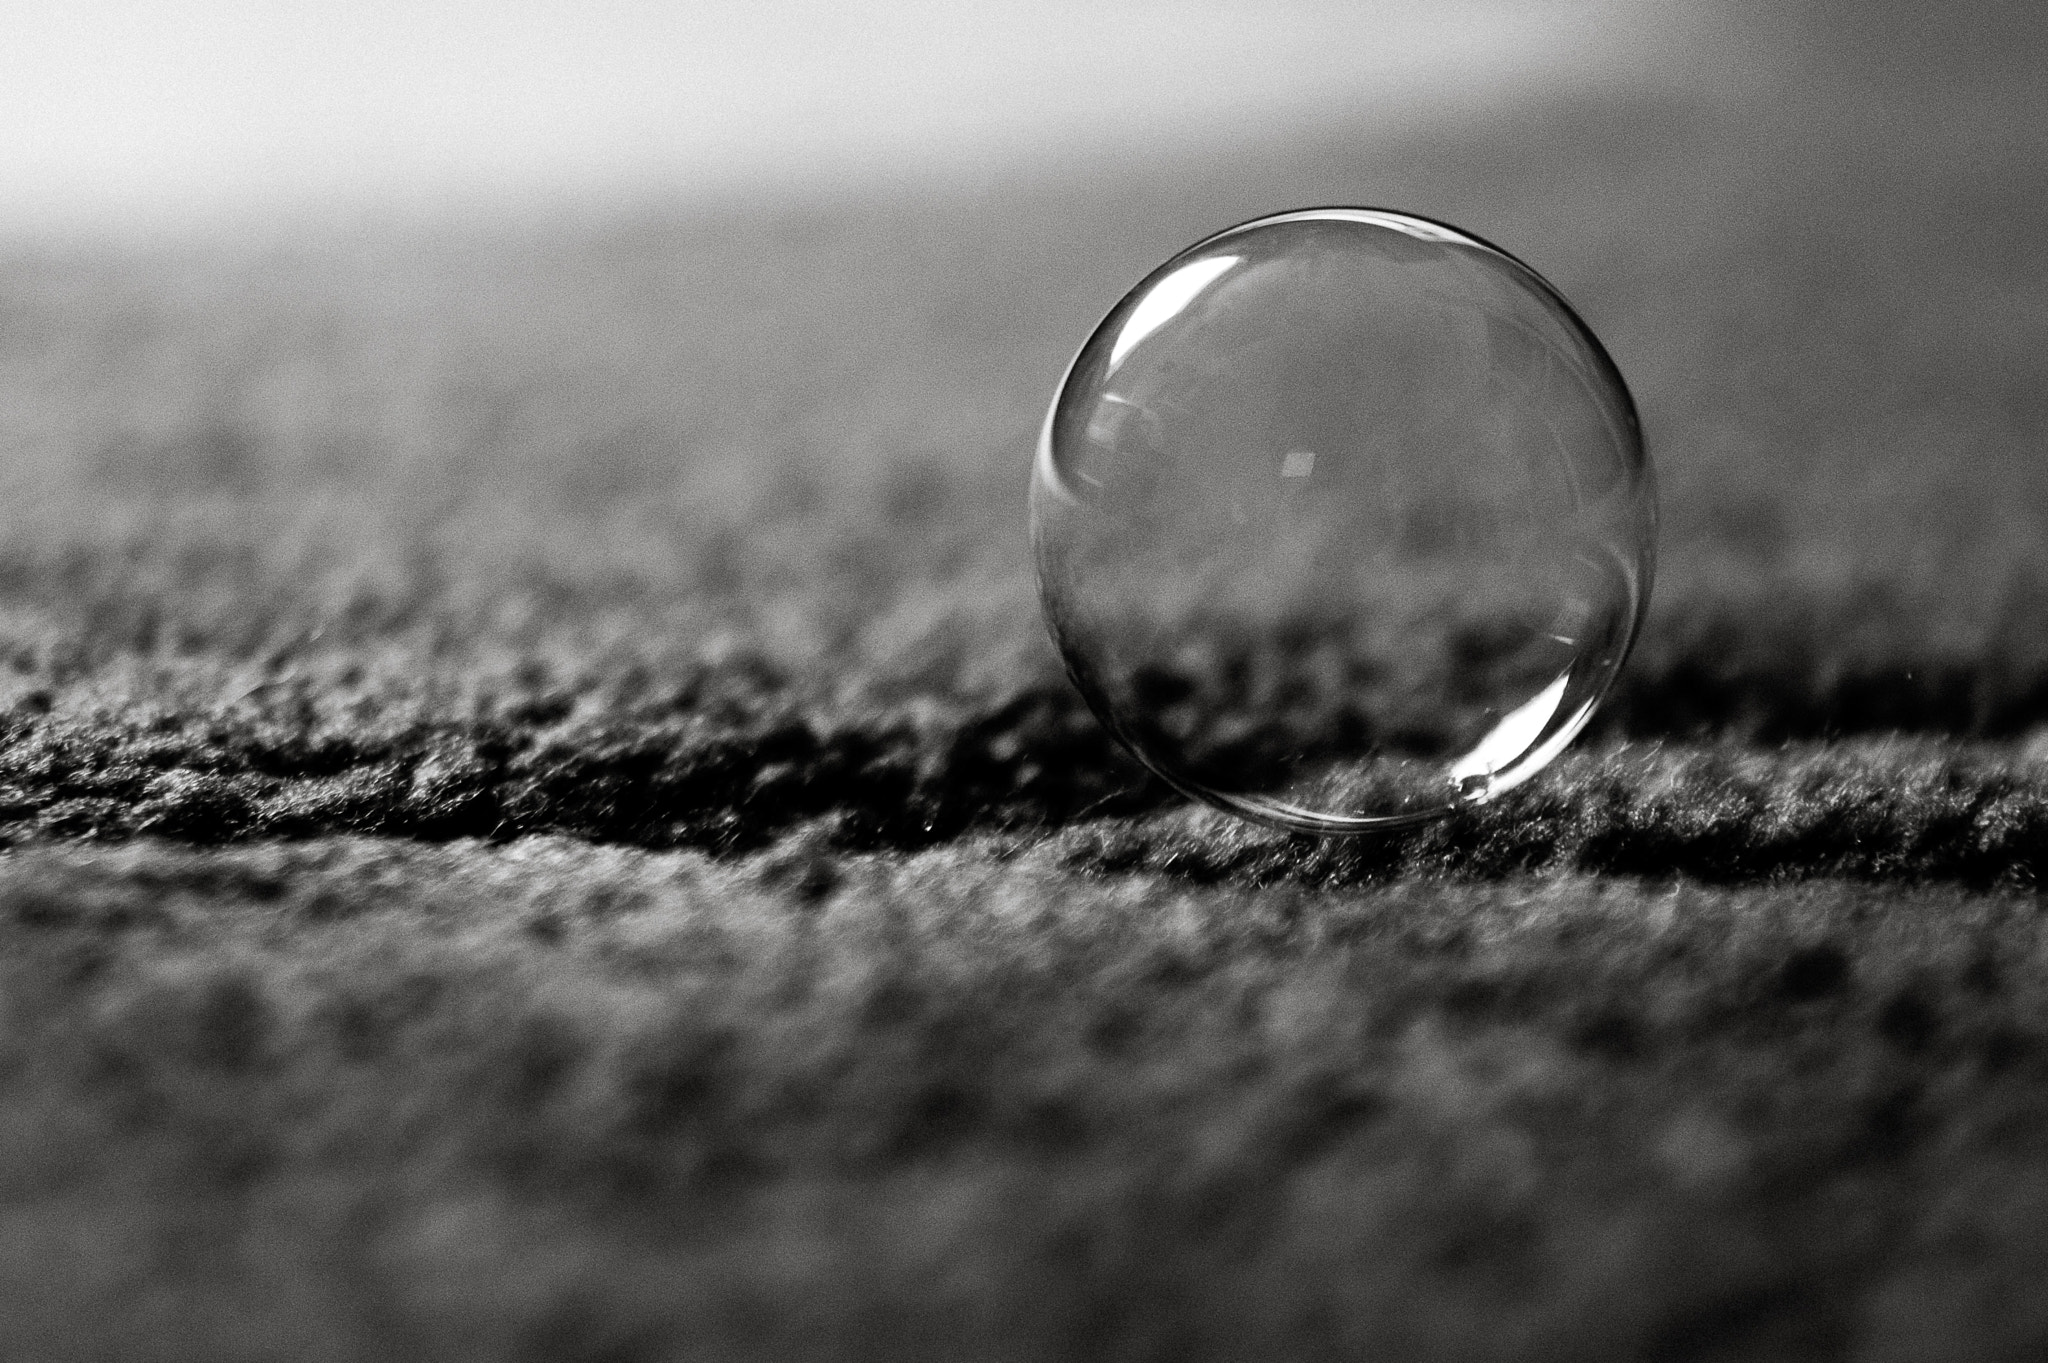 Photograph Bubbly Bubble by Lars Kugelblitz on 500px